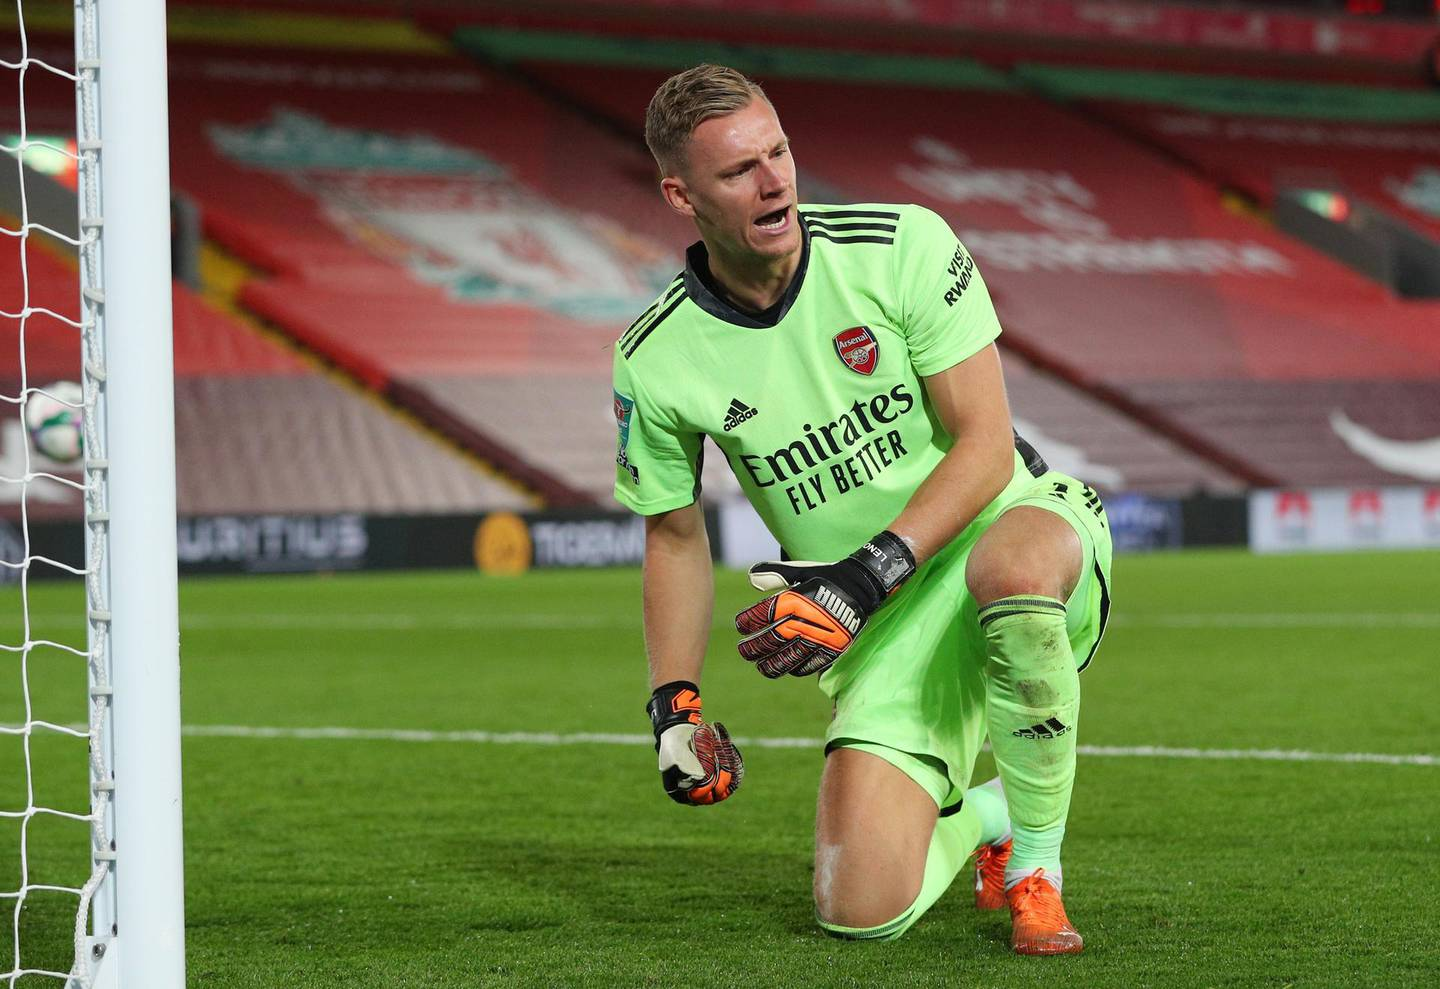 Soccer Football - Carabao Cup Fourth Round - Liverpool v Arsenal - Anfield, Liverpool, Britain - October 1, 2020 Arsenal's Bernd Leno celebrates after making a save during the penalty shootout Pool via REUTERS/Peter Byrne EDITORIAL USE ONLY. No use with unauthorized audio, video, data, fixture lists, club/league logos or 'live' services. Online in-match use limited to 75 images, no video emulation. No use in betting, games or single club /league/player publications.  Please contact your account representative for further details.